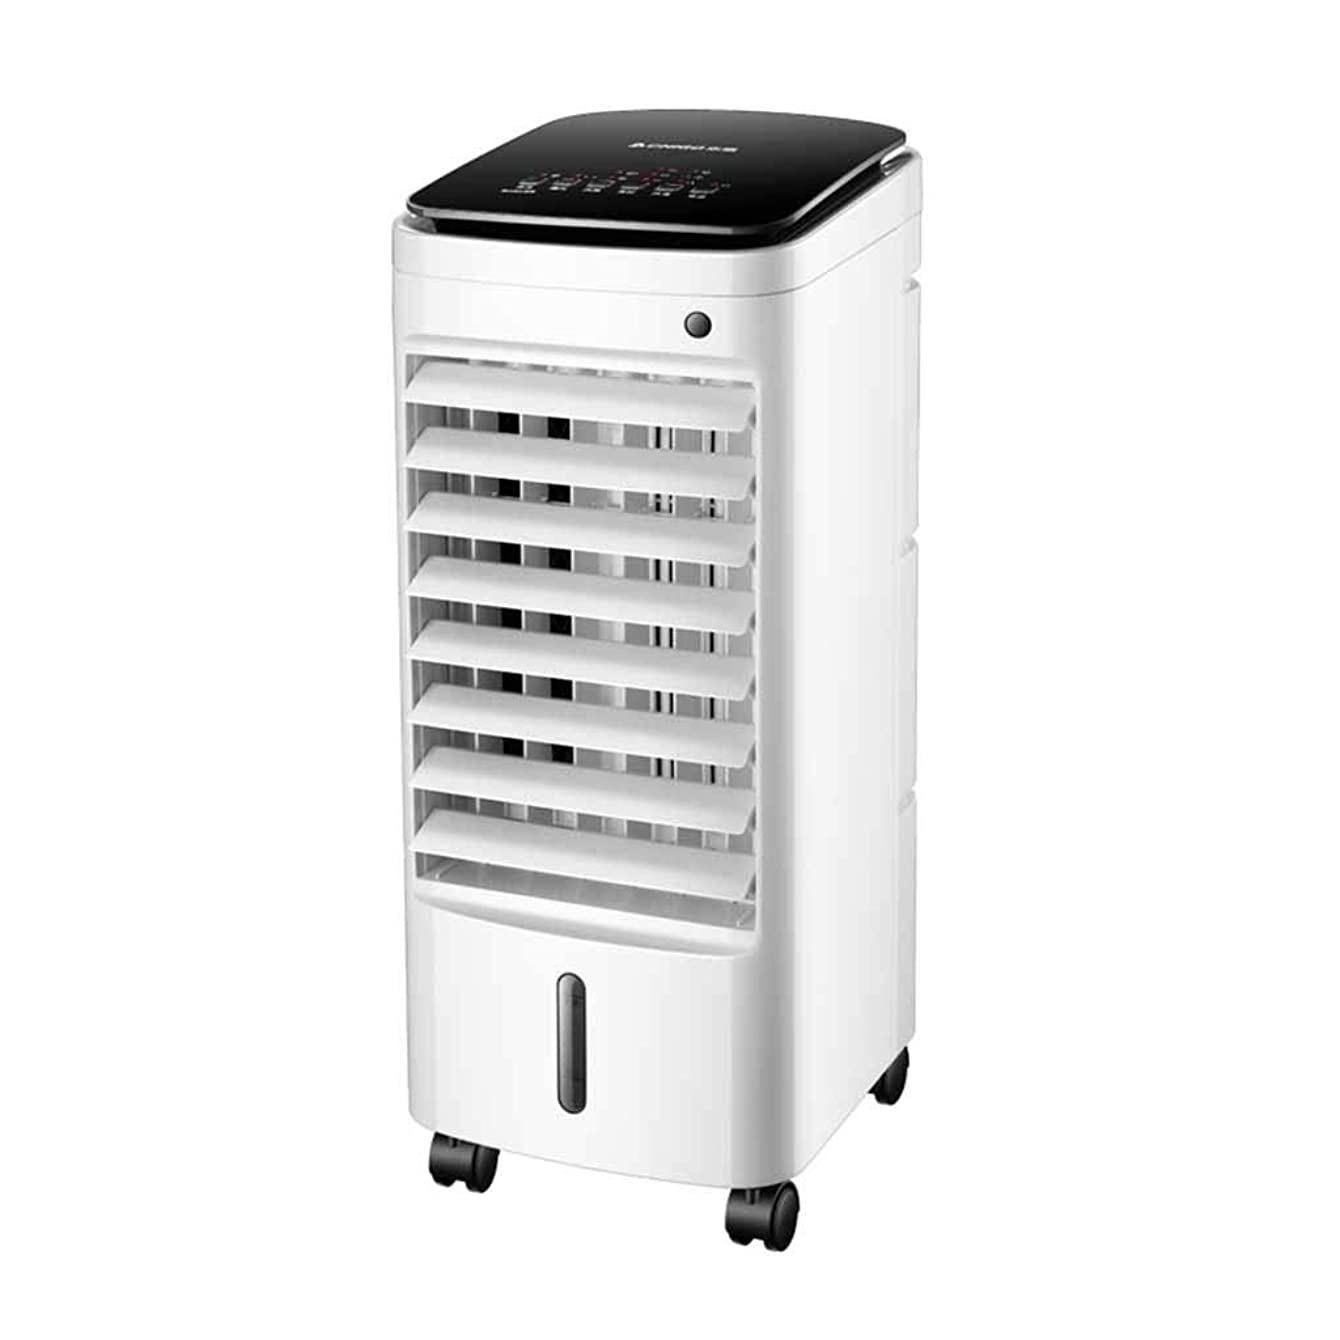 Small air conditioner Portable Evaporative Air Cooler with Remote Control, White, Humidifier, Air Purifier 3 in 1, Water Cooler with 5 Ice Colling Fan